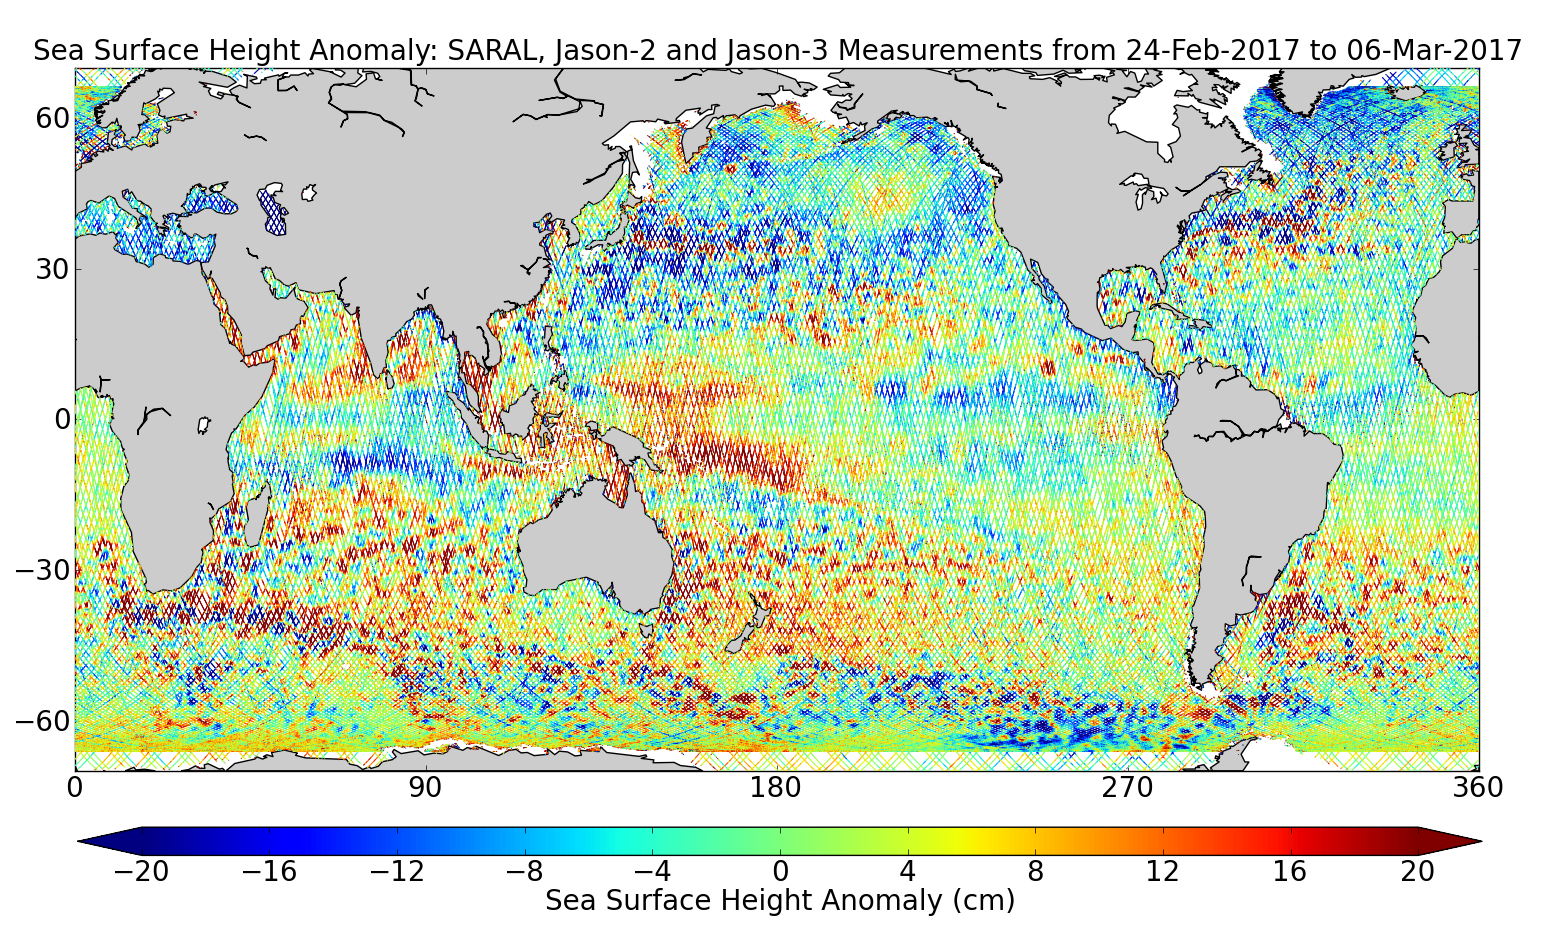 Sea Surface Height Anomaly: SARAL, Jason-2 and Jason-3 Measurements from 24-Feb-2017 to 06-Mar-2017